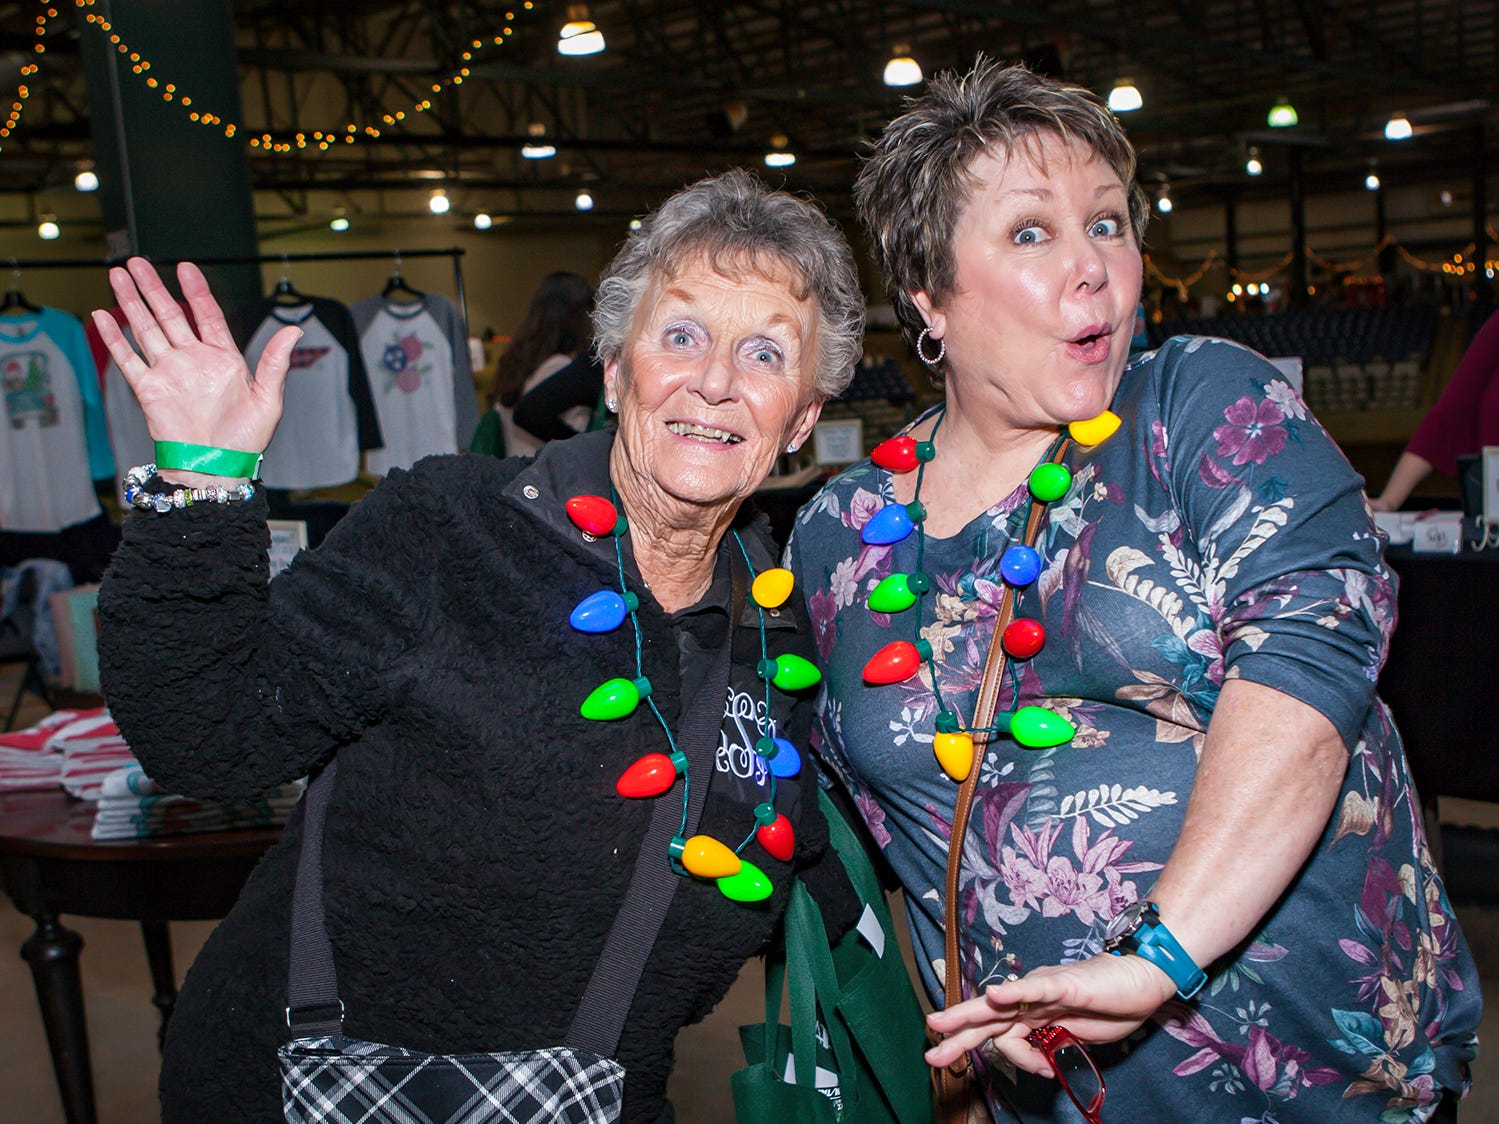 Lucy Swafford and Darlene Dalton at Mistletoe & Martinis, the preview party for Junior League of Murfreesboro's 2018 Hollyday Marketplace.